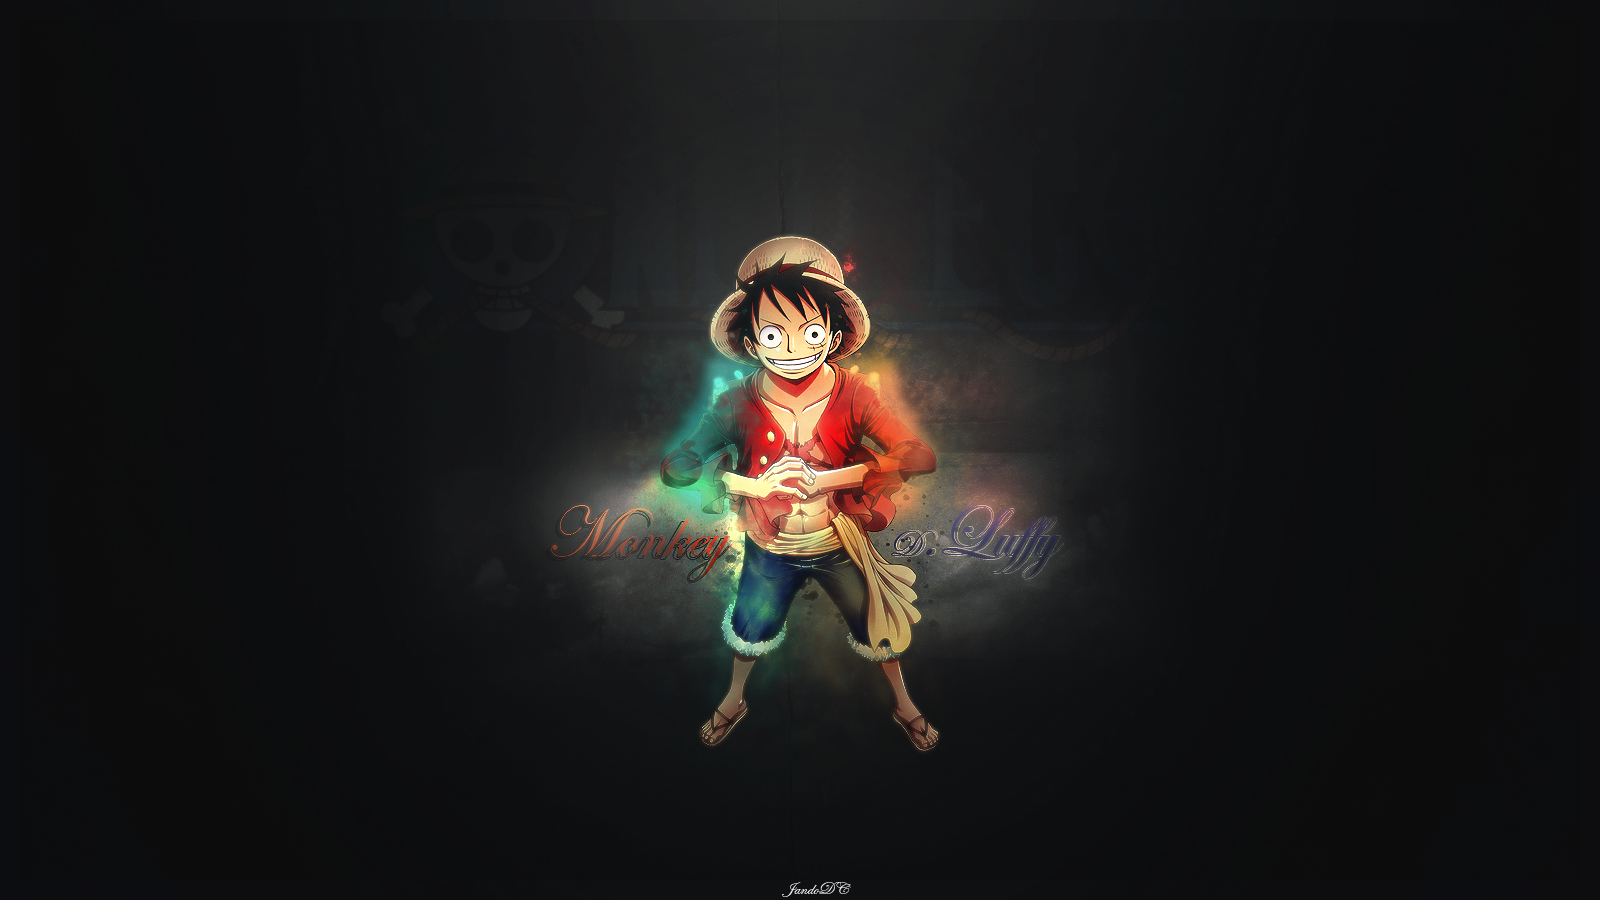 Wallpaper iphone monkey - Monkey D Luffy In Black Hd Wallpapers Monkey D Luffy Wallpapers